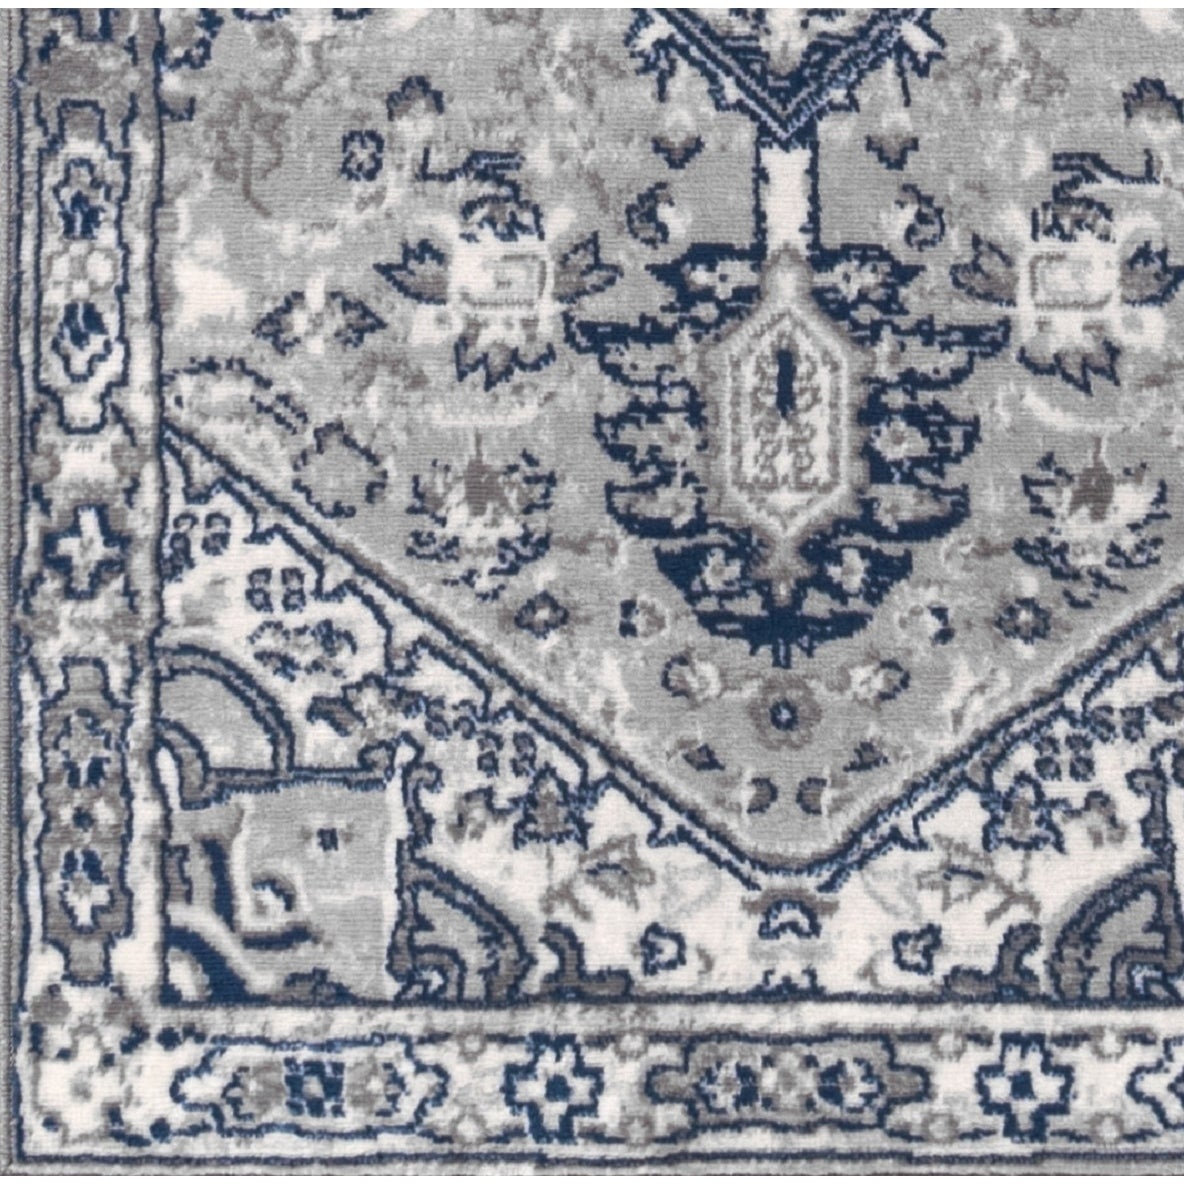 598375c4 Shop Copper Grove Konispal Modern Persian Vintage Medallion Light Grey/Navy  Distressed Area Rug - Free Shipping On Orders Over $45 - Overstock -  25896032